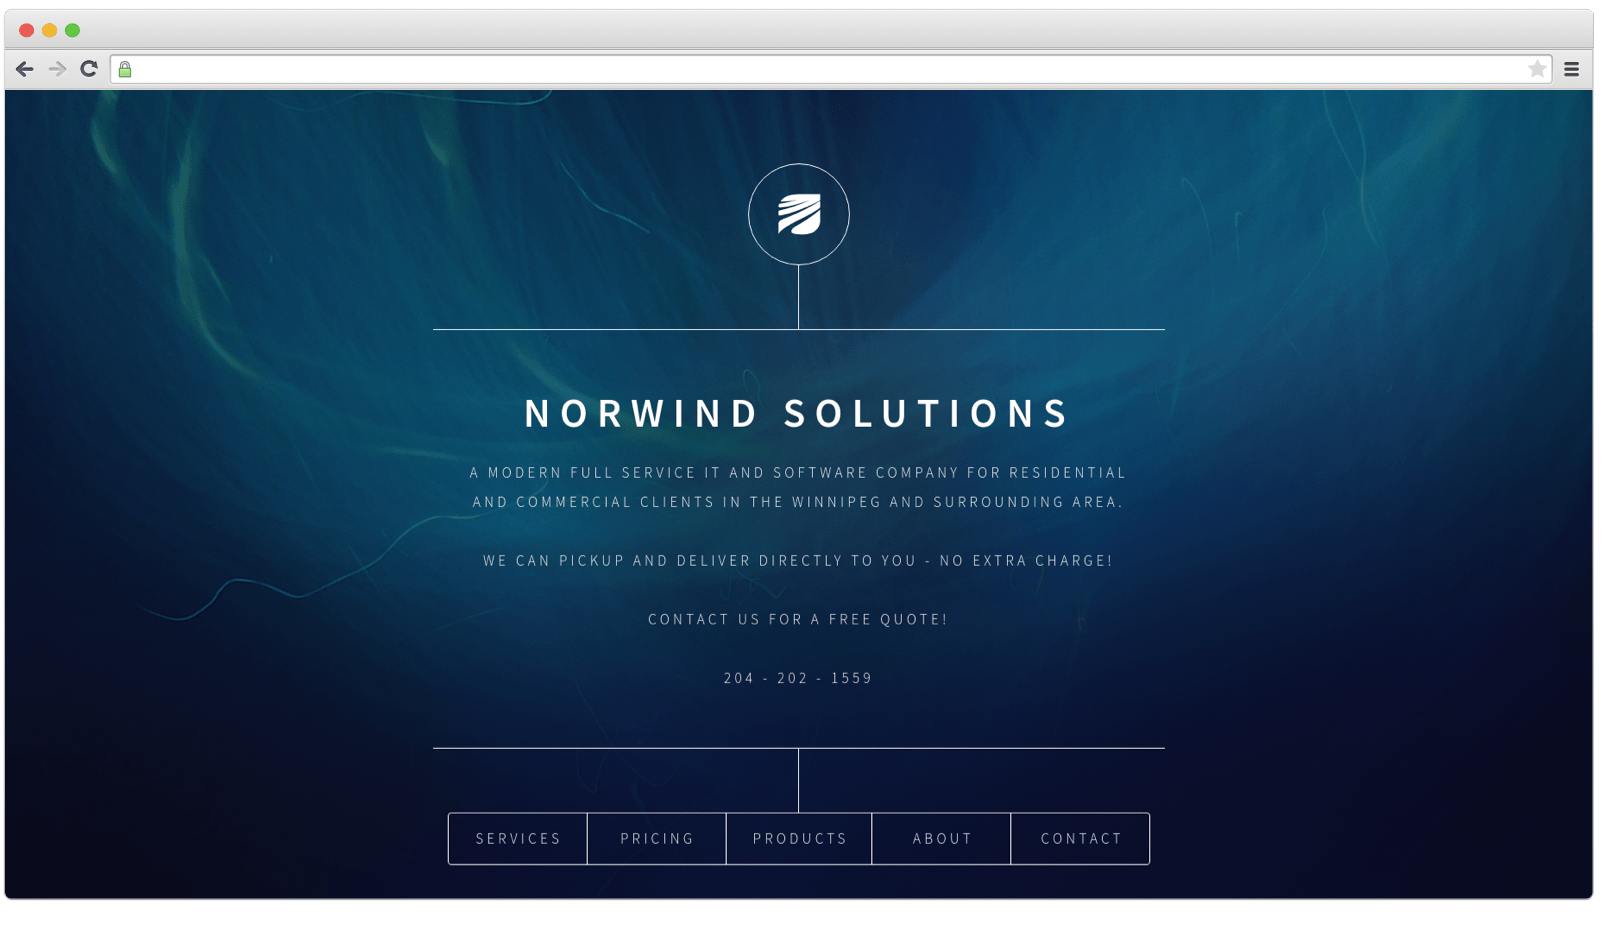 Norwind Solutions